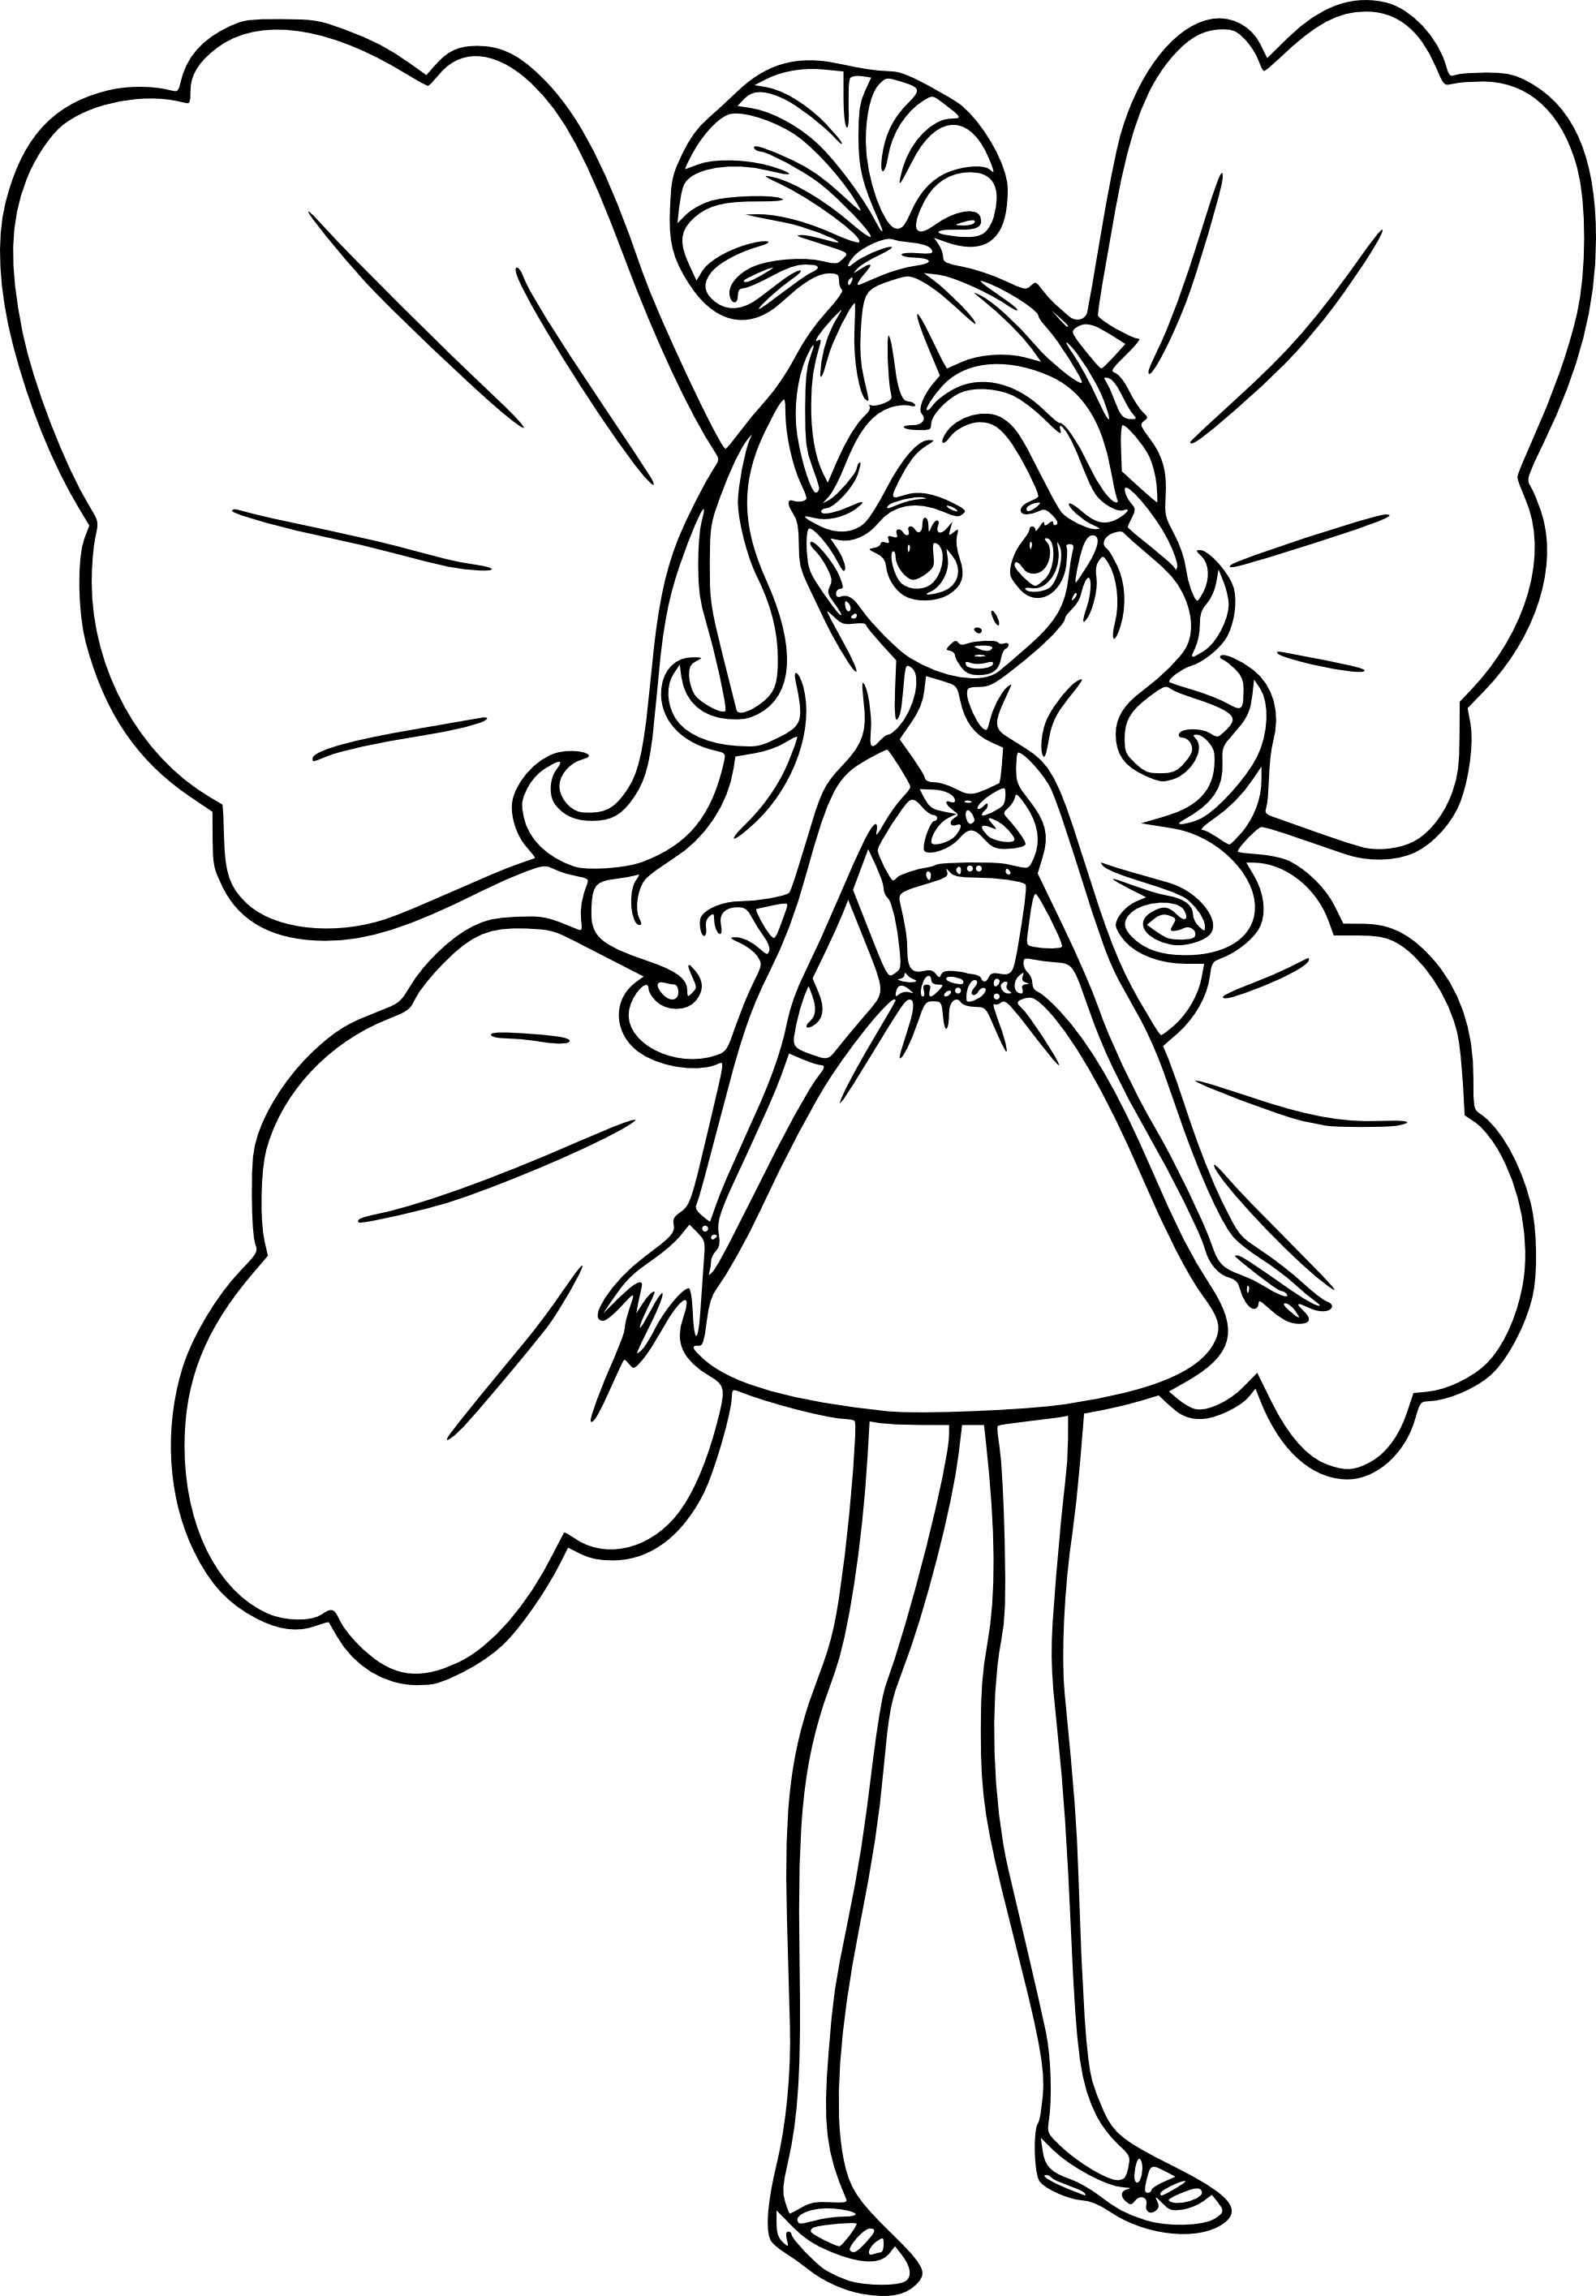 Coloriage barbie lilipucia imprimer et colorier - Barbie a colorier ...